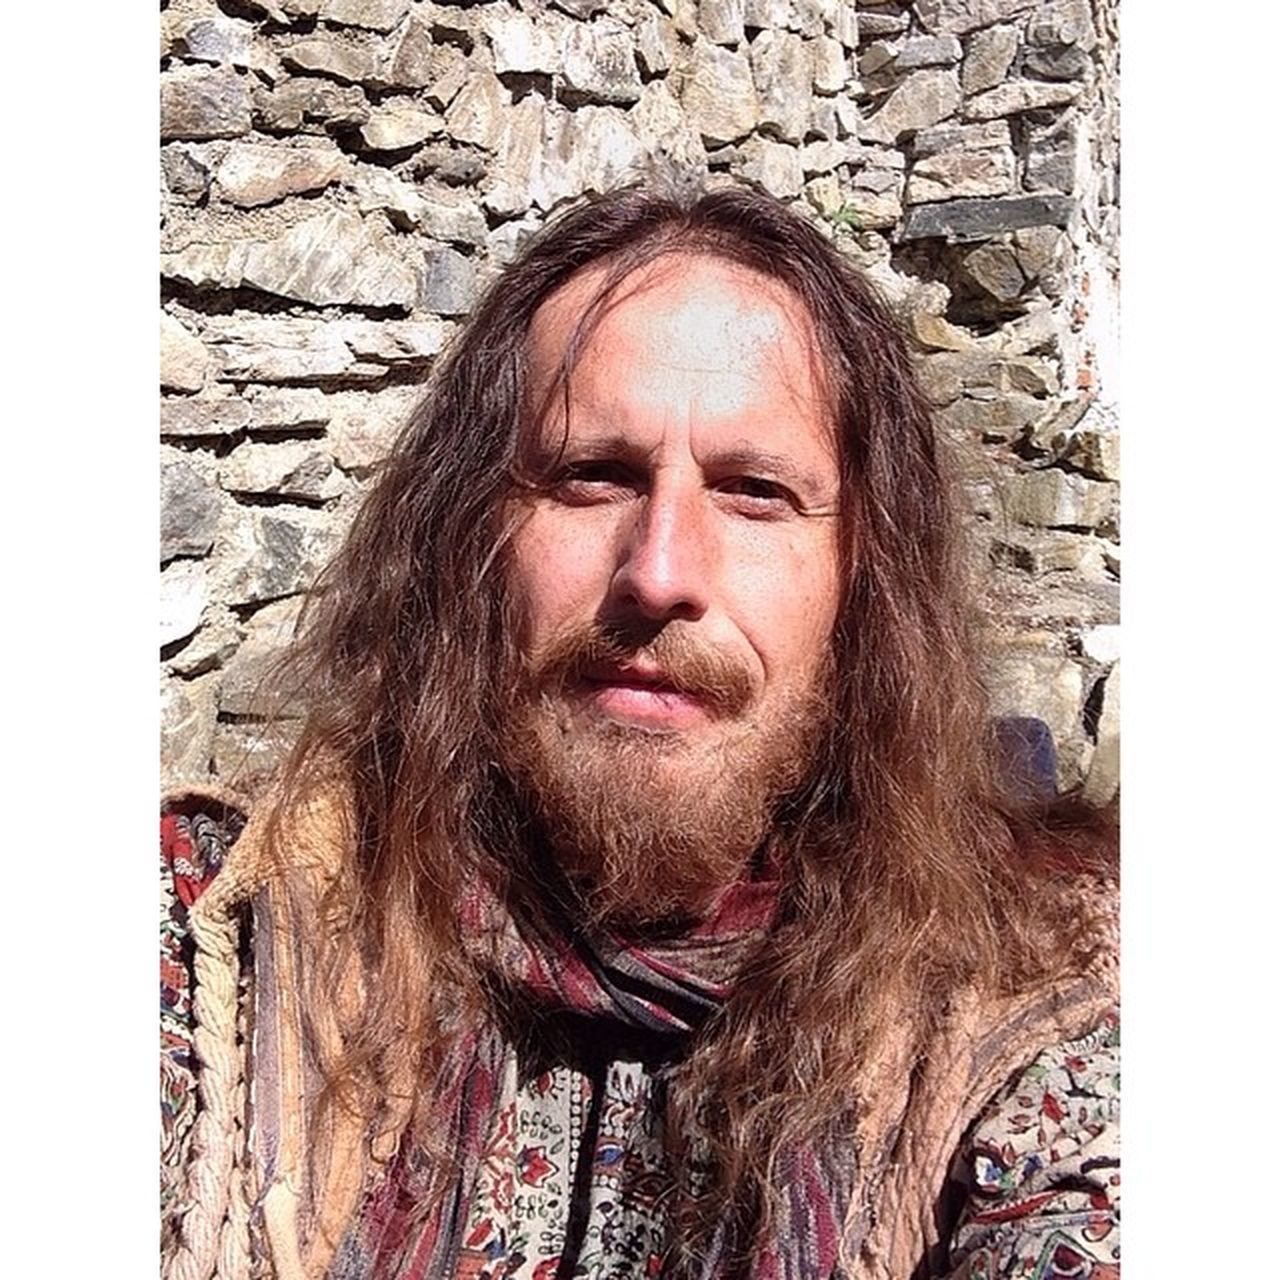 portrait, beard, real people, mature adult, looking at camera, one person, front view, one man only, long hair, mustache, only men, mature men, headshot, outdoors, human face, architecture, day, men, adult, built structure, human body part, adults only, people, close-up, young adult